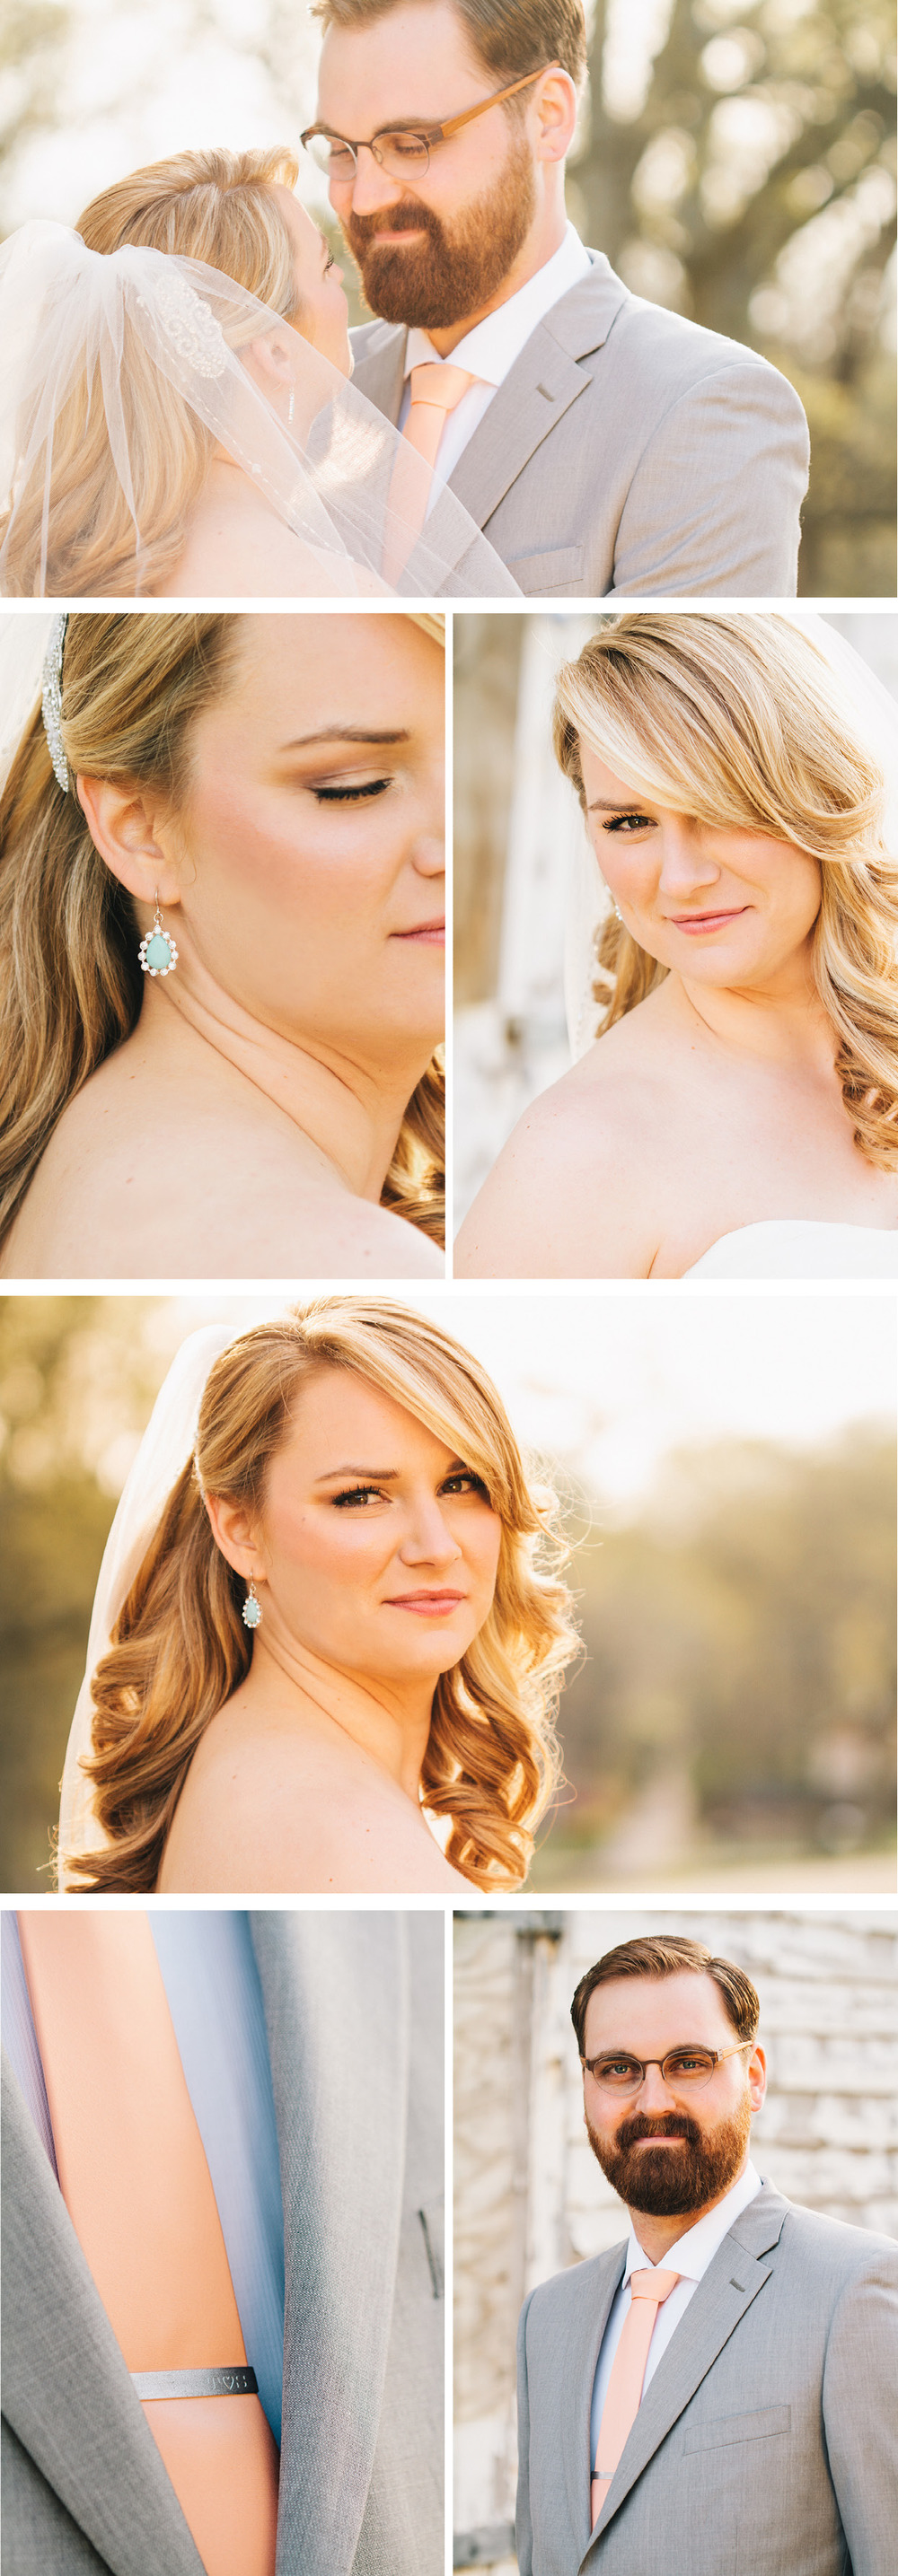 CK-Photo-Nashville-Wedding-Photographer-ST6.jpg